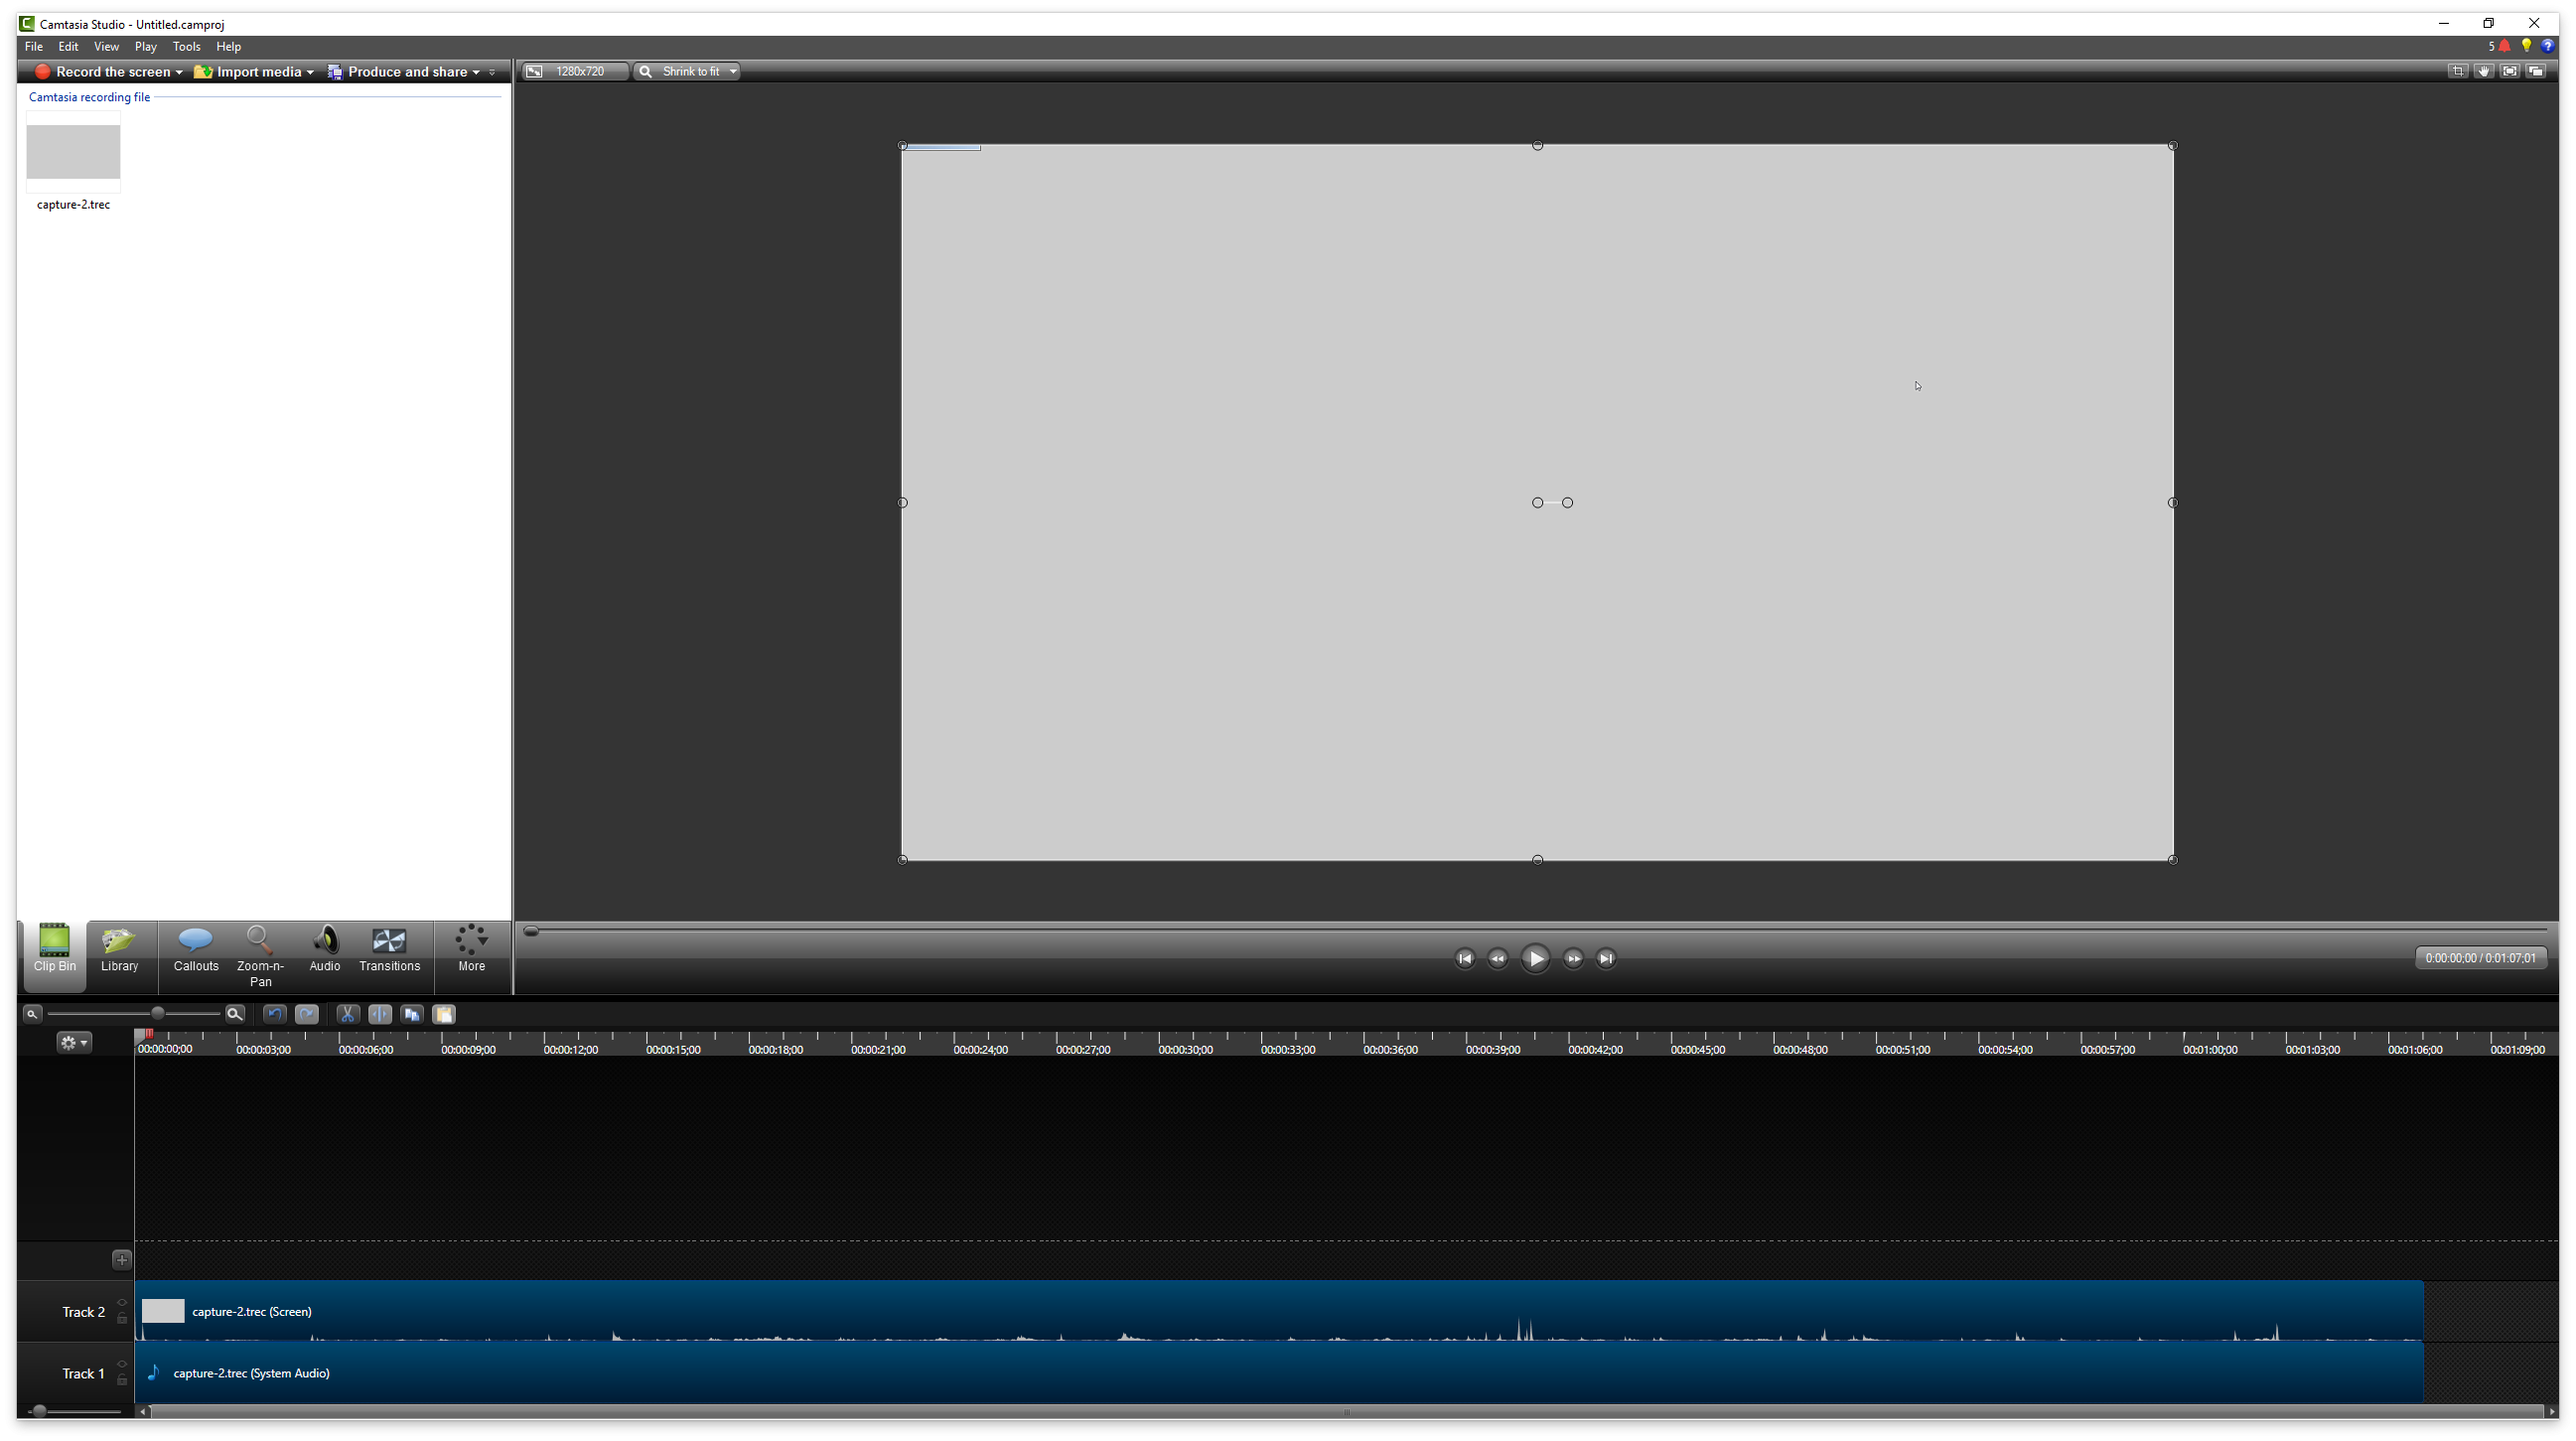 Recording editing and exporting with camtasia studio for windows editing with camtasia studio ccuart Gallery